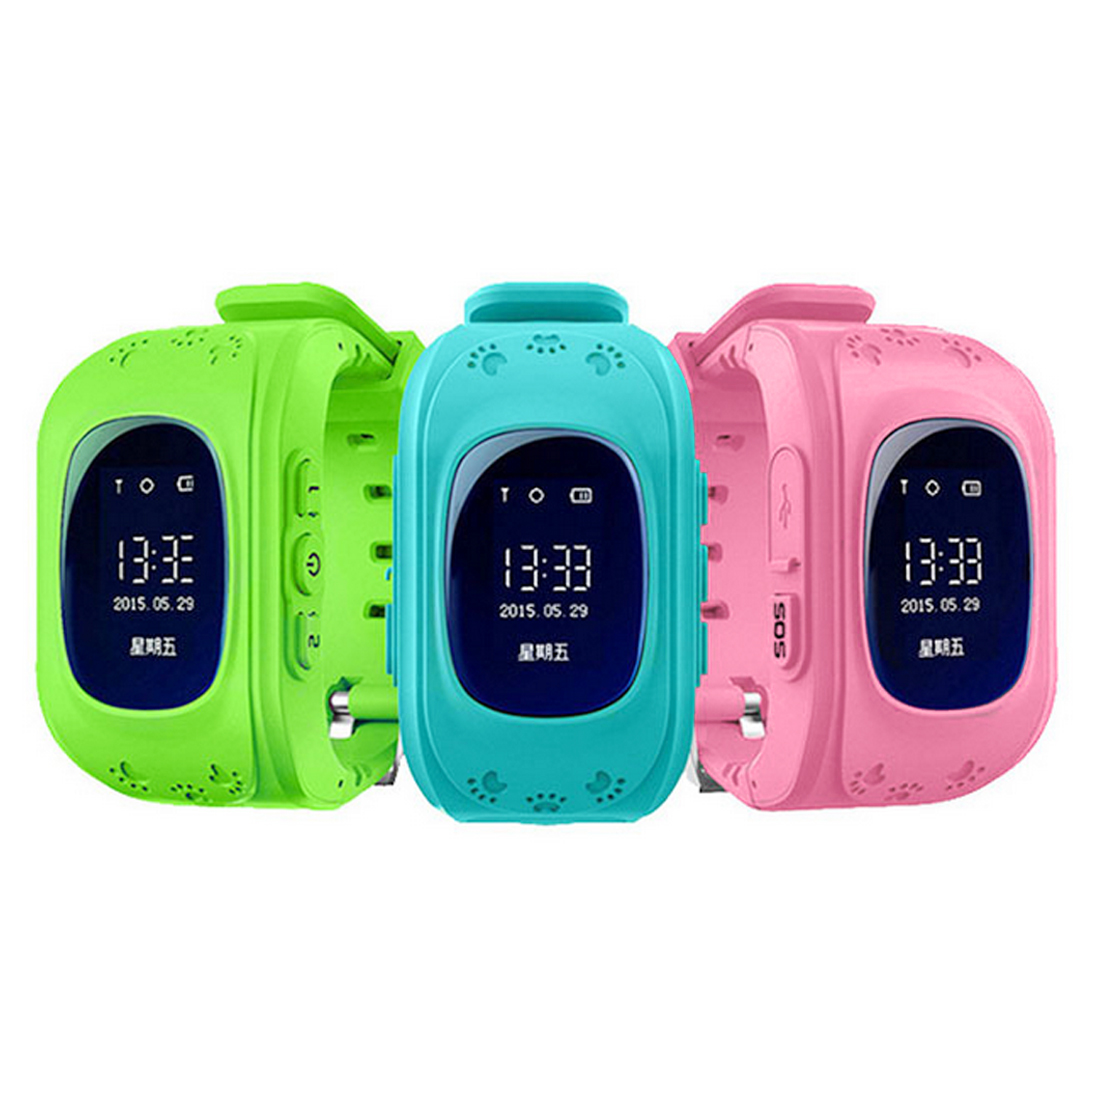 CONTECHIA <font><b>Q50</b></font> <font><b>Kids</b></font> Watches for Children SOS Call Location Finder Locator Tracker Anti Lost Monitor <font><b>Smartwatch</b></font> image